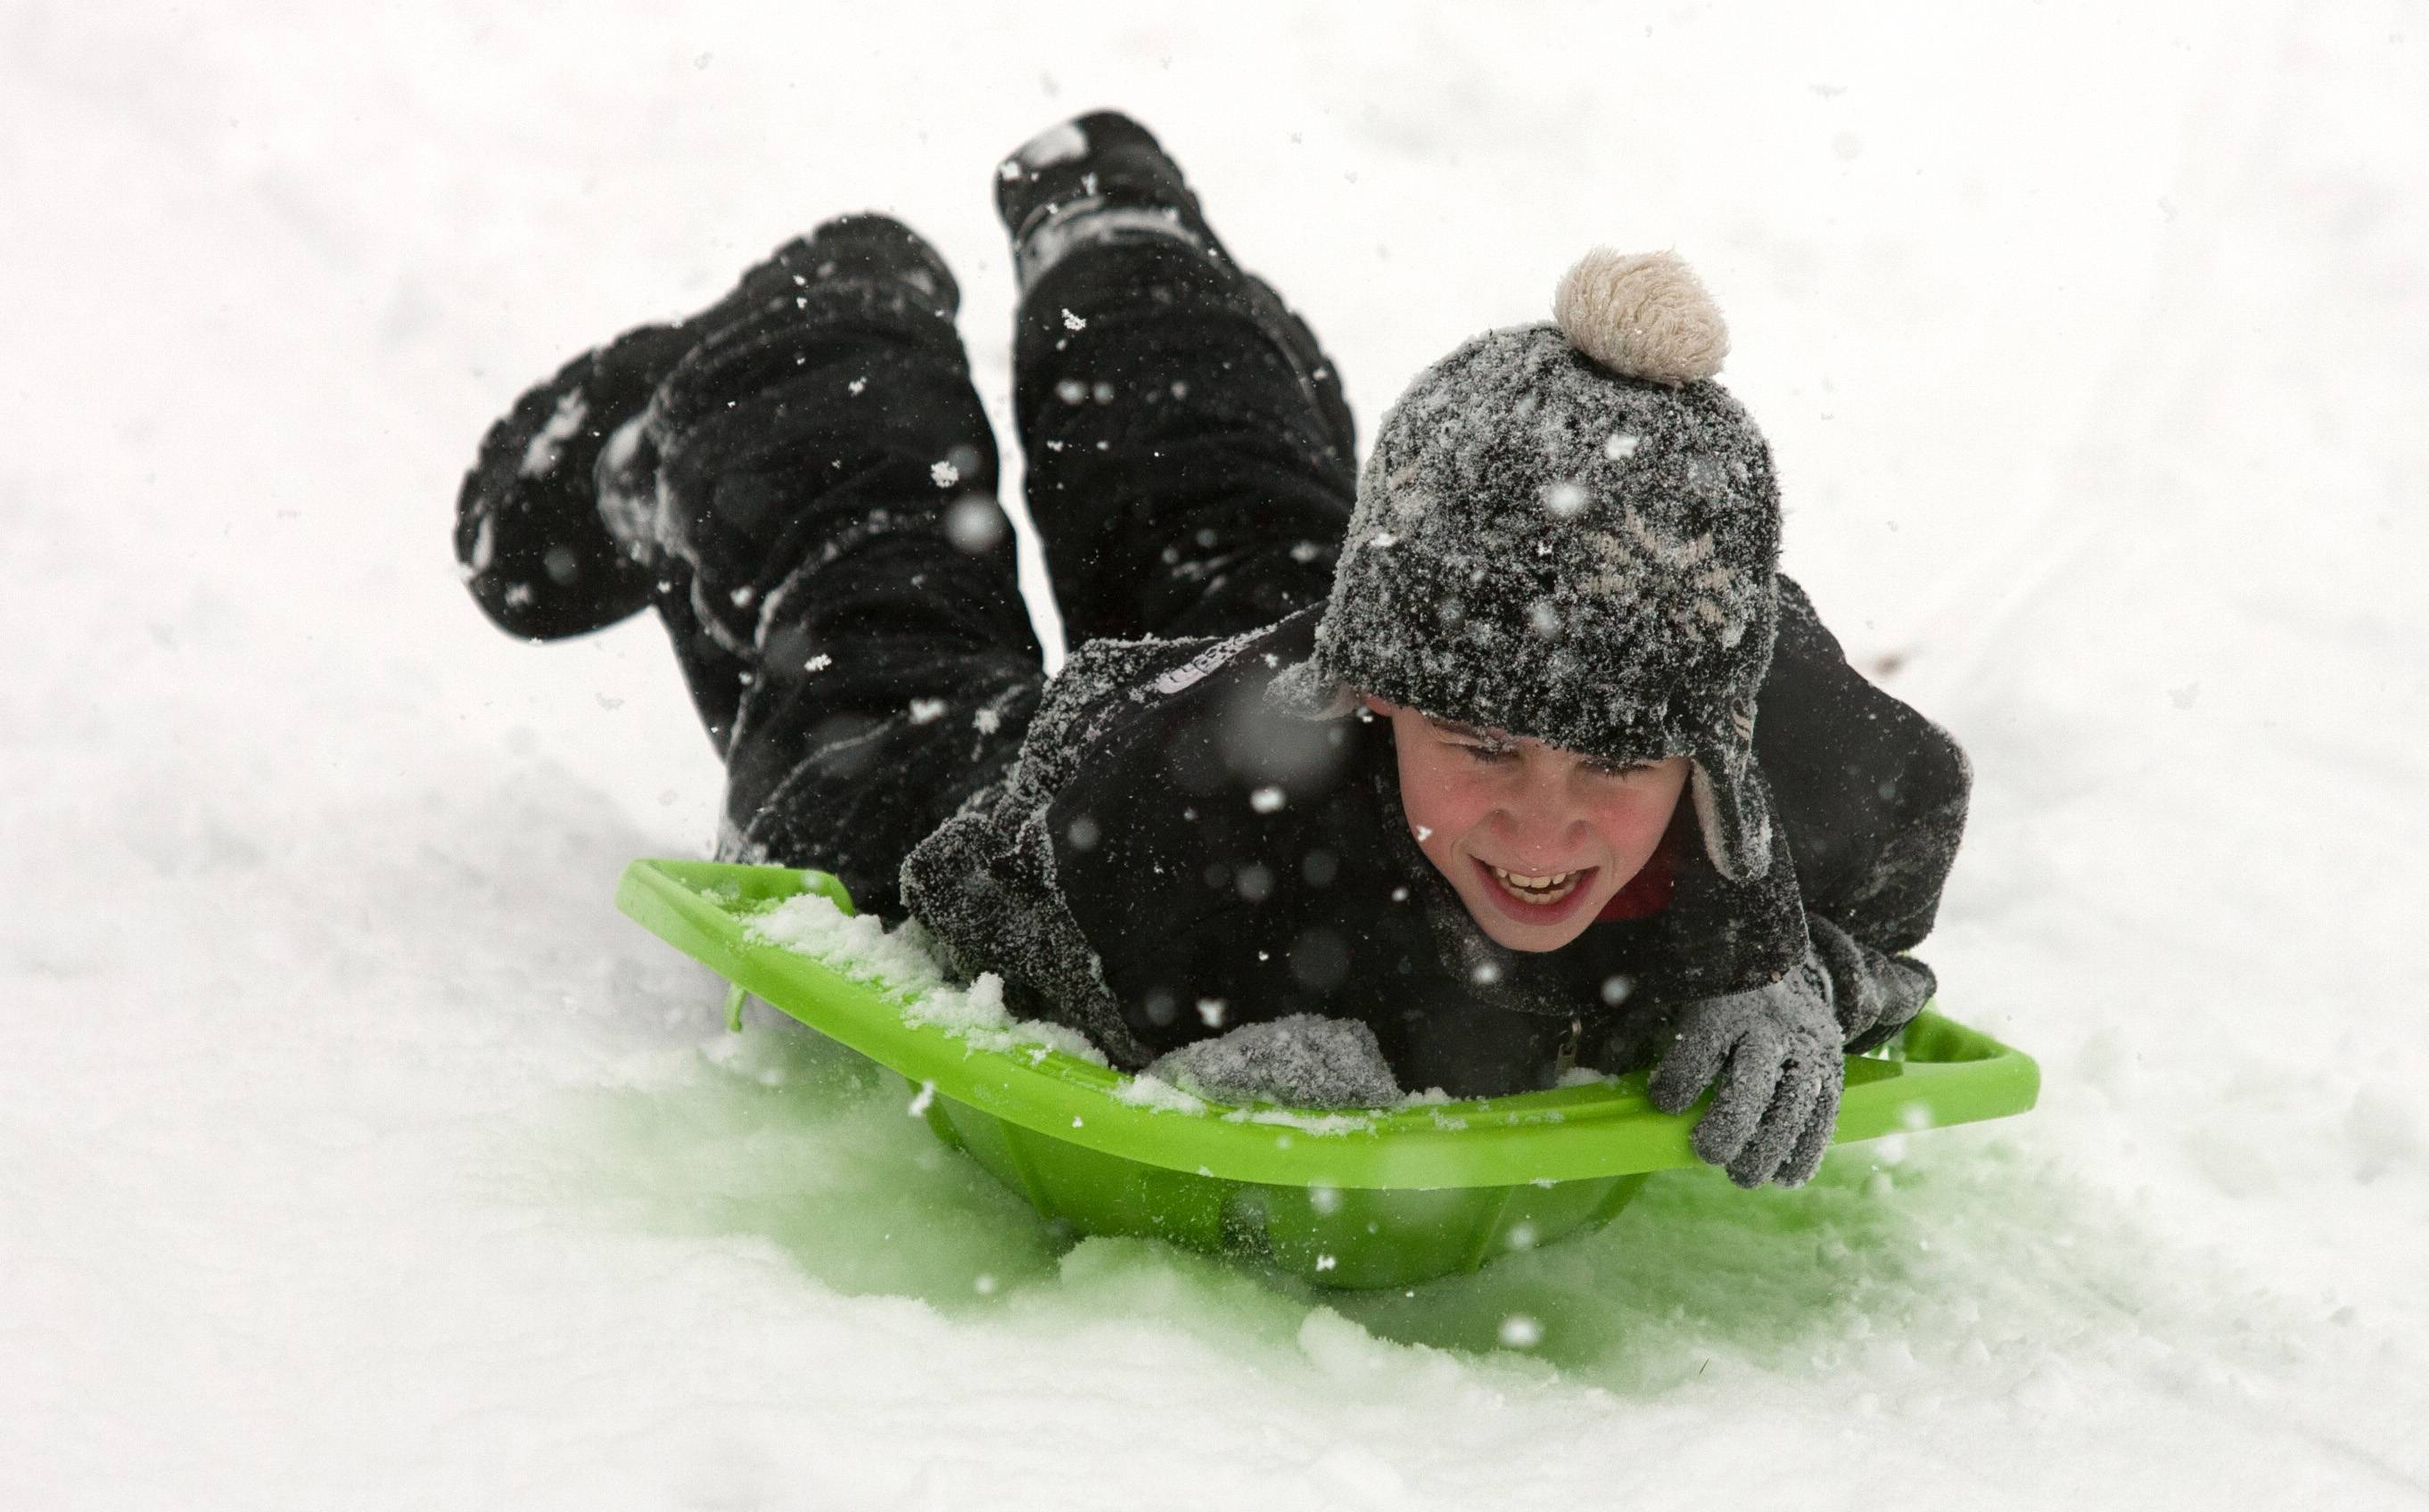 Kevin Hogan of Western Springs enjoys sledding down a hill next to the Oak Brook Public Library.